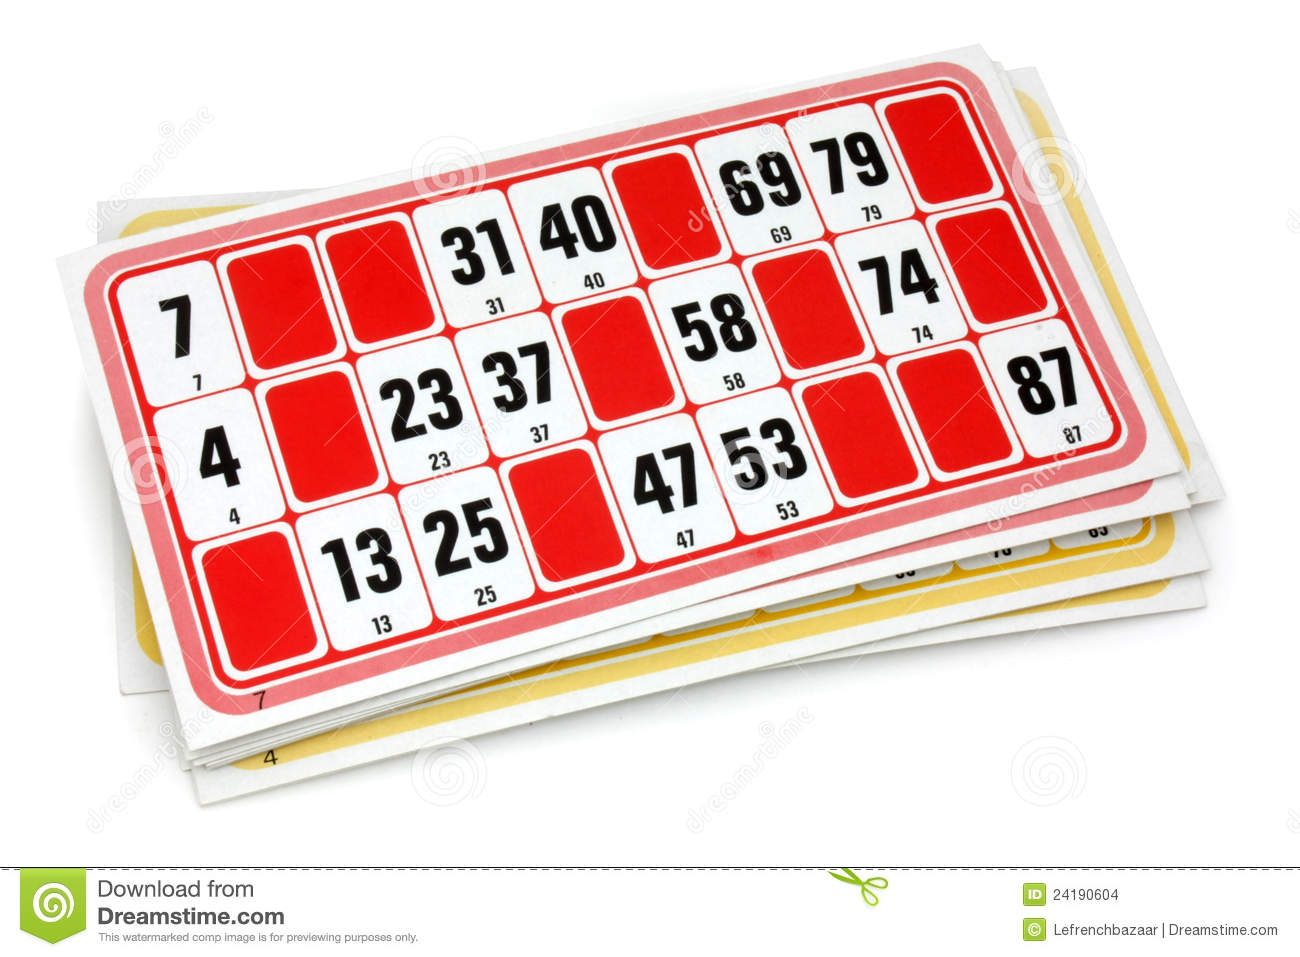 French Loto Game Cardboards Stock Images - Image: 24190604